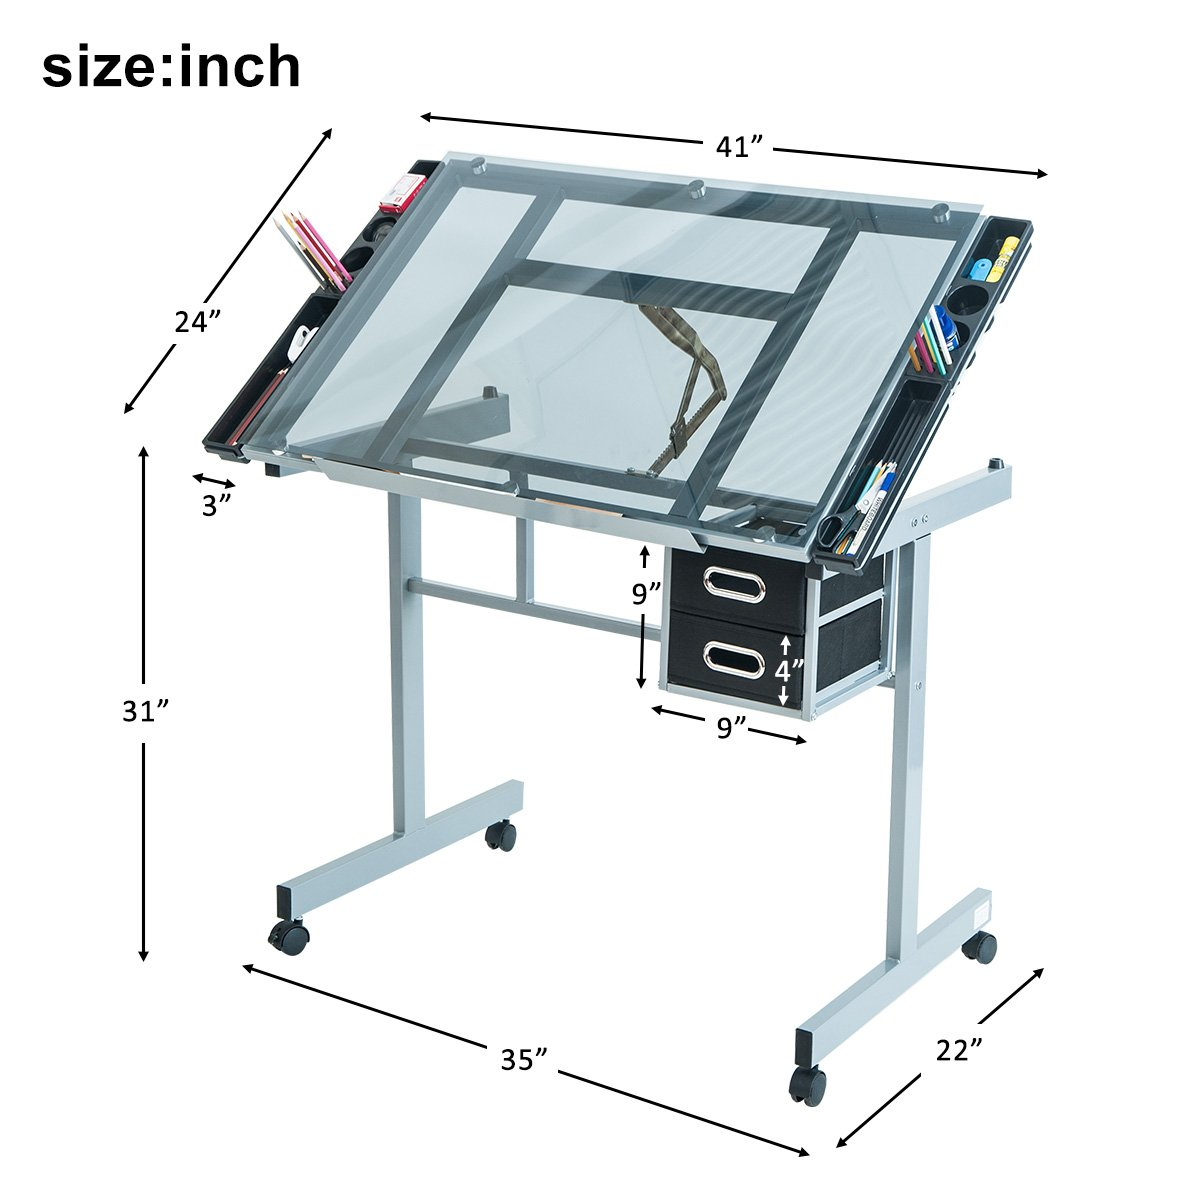 Harper&Bright Designs Adjustable Drafting Table Drawing Desk with Tempered Glass Top, Two Drawers and Castors by Harper&Bright Designs (Image #2)